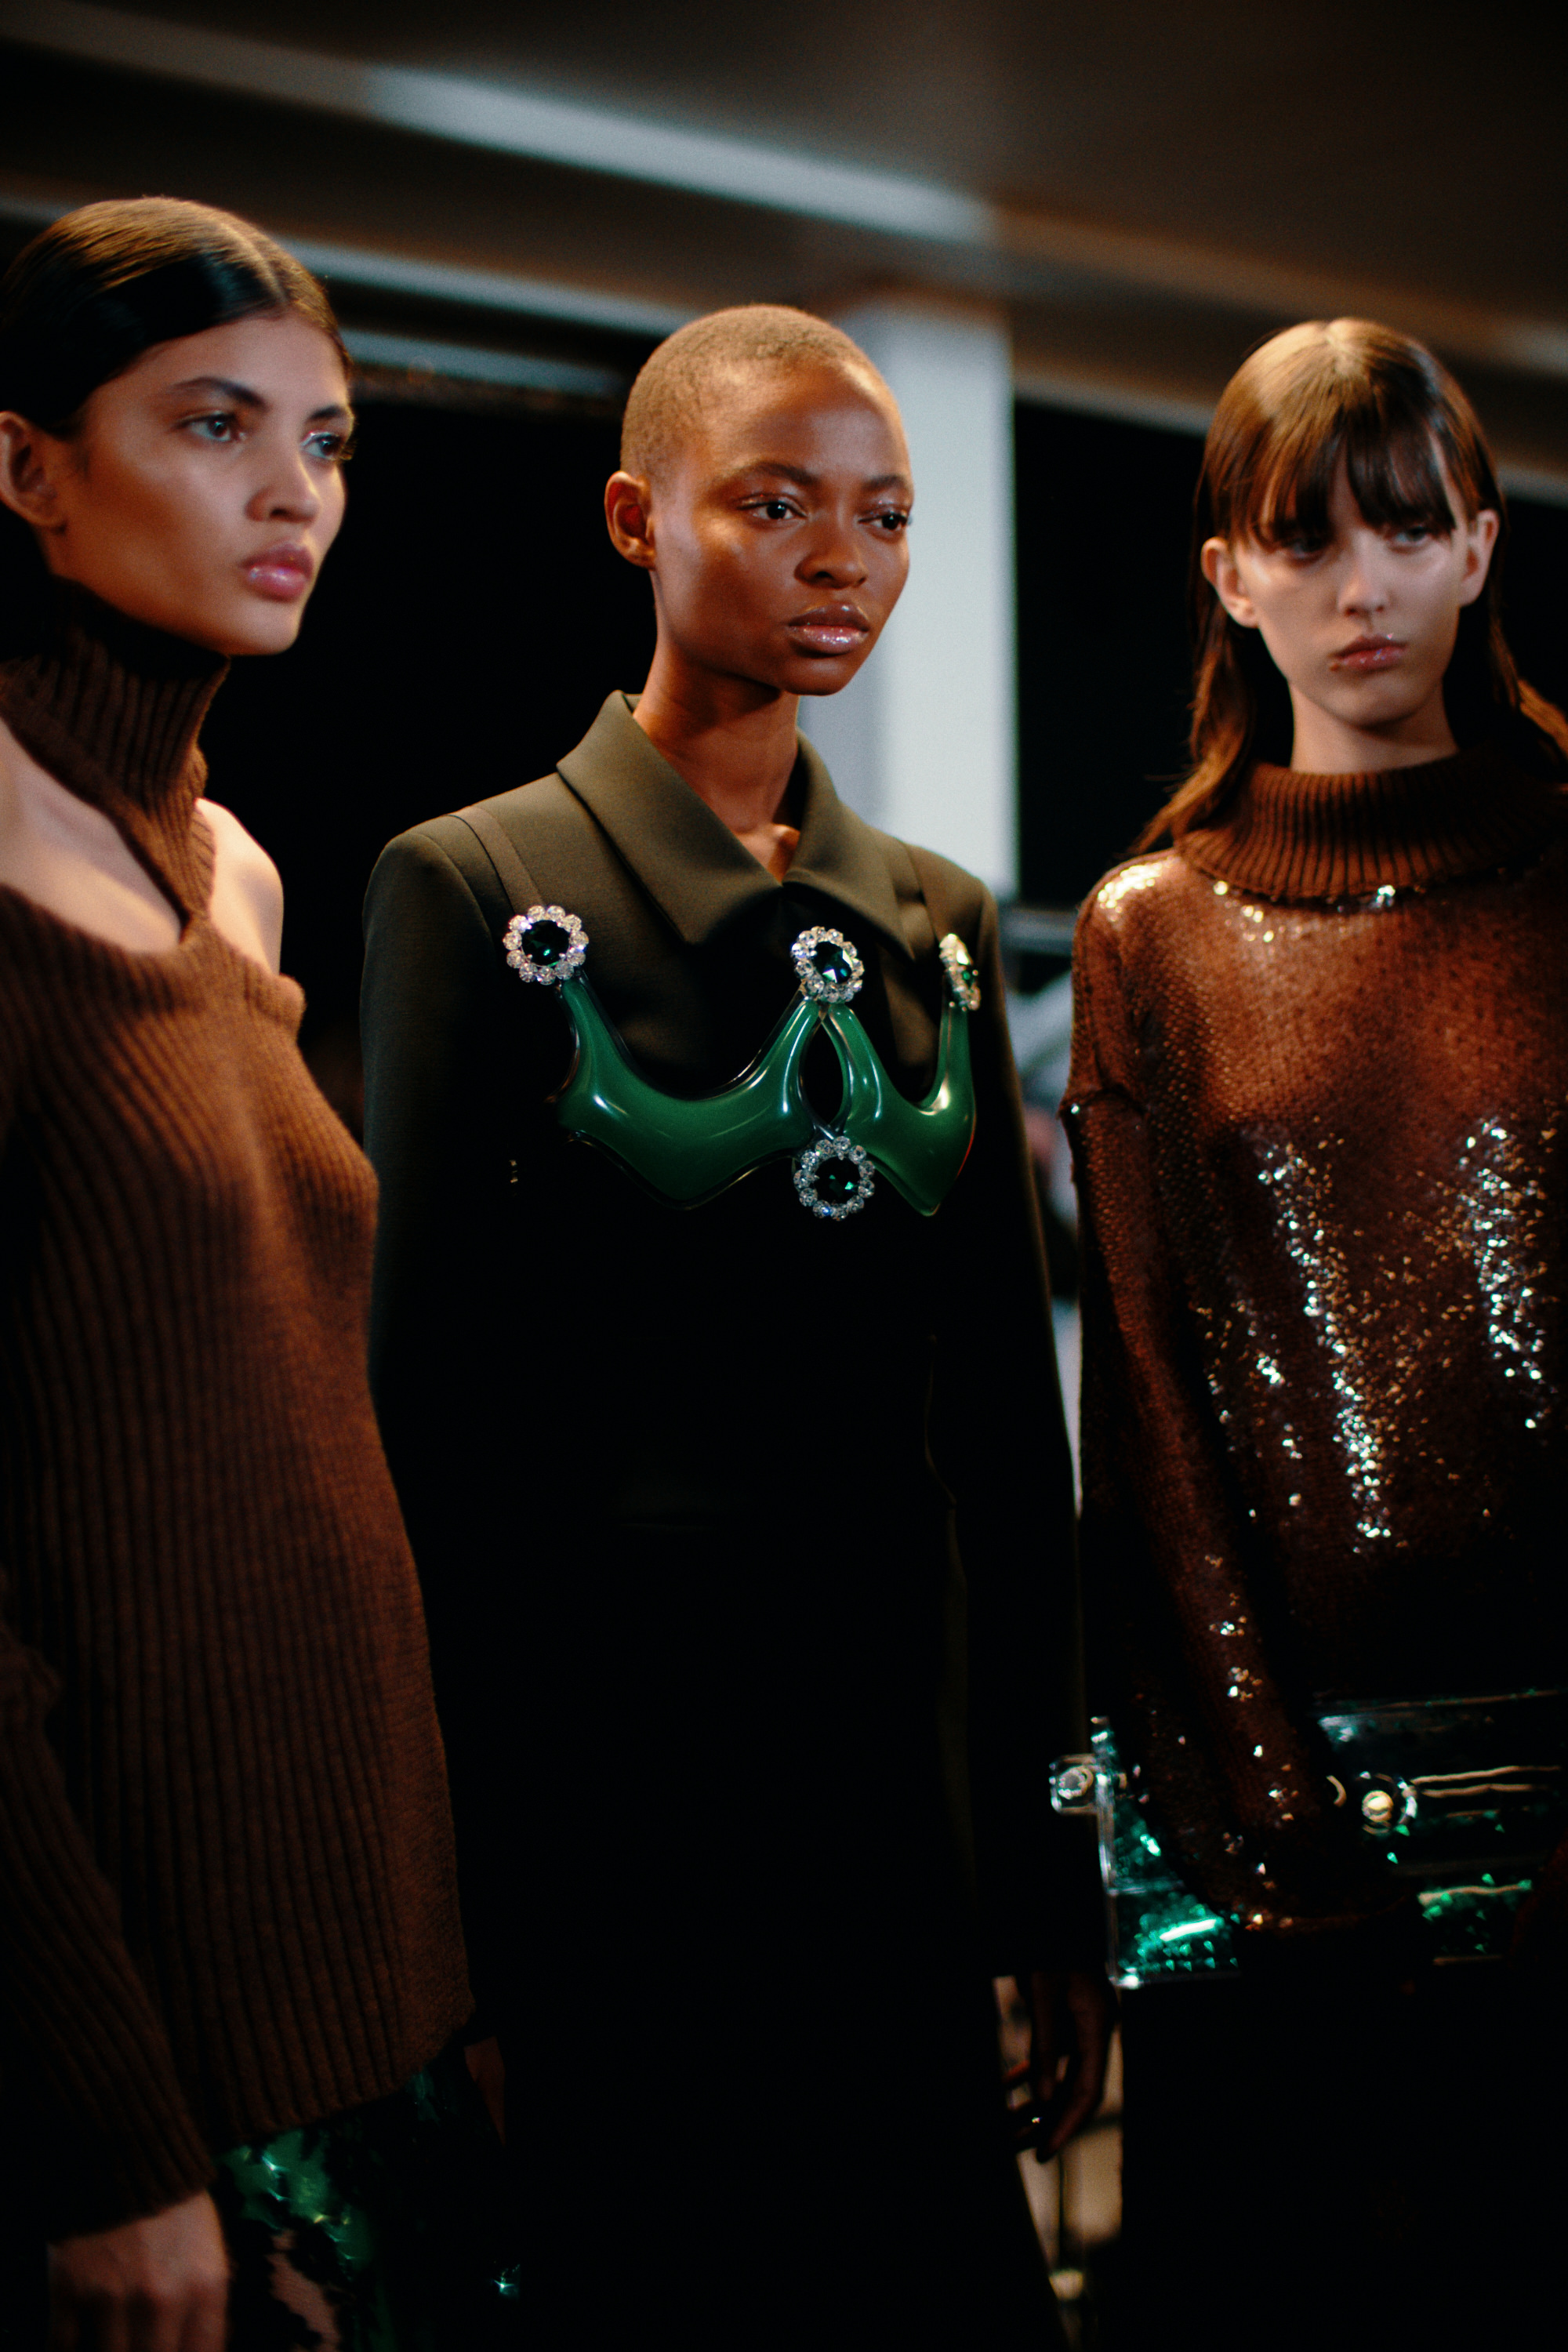 0132_ChristopherKane_Vogue_17Feb2020_Credit-Jamie-Stoker